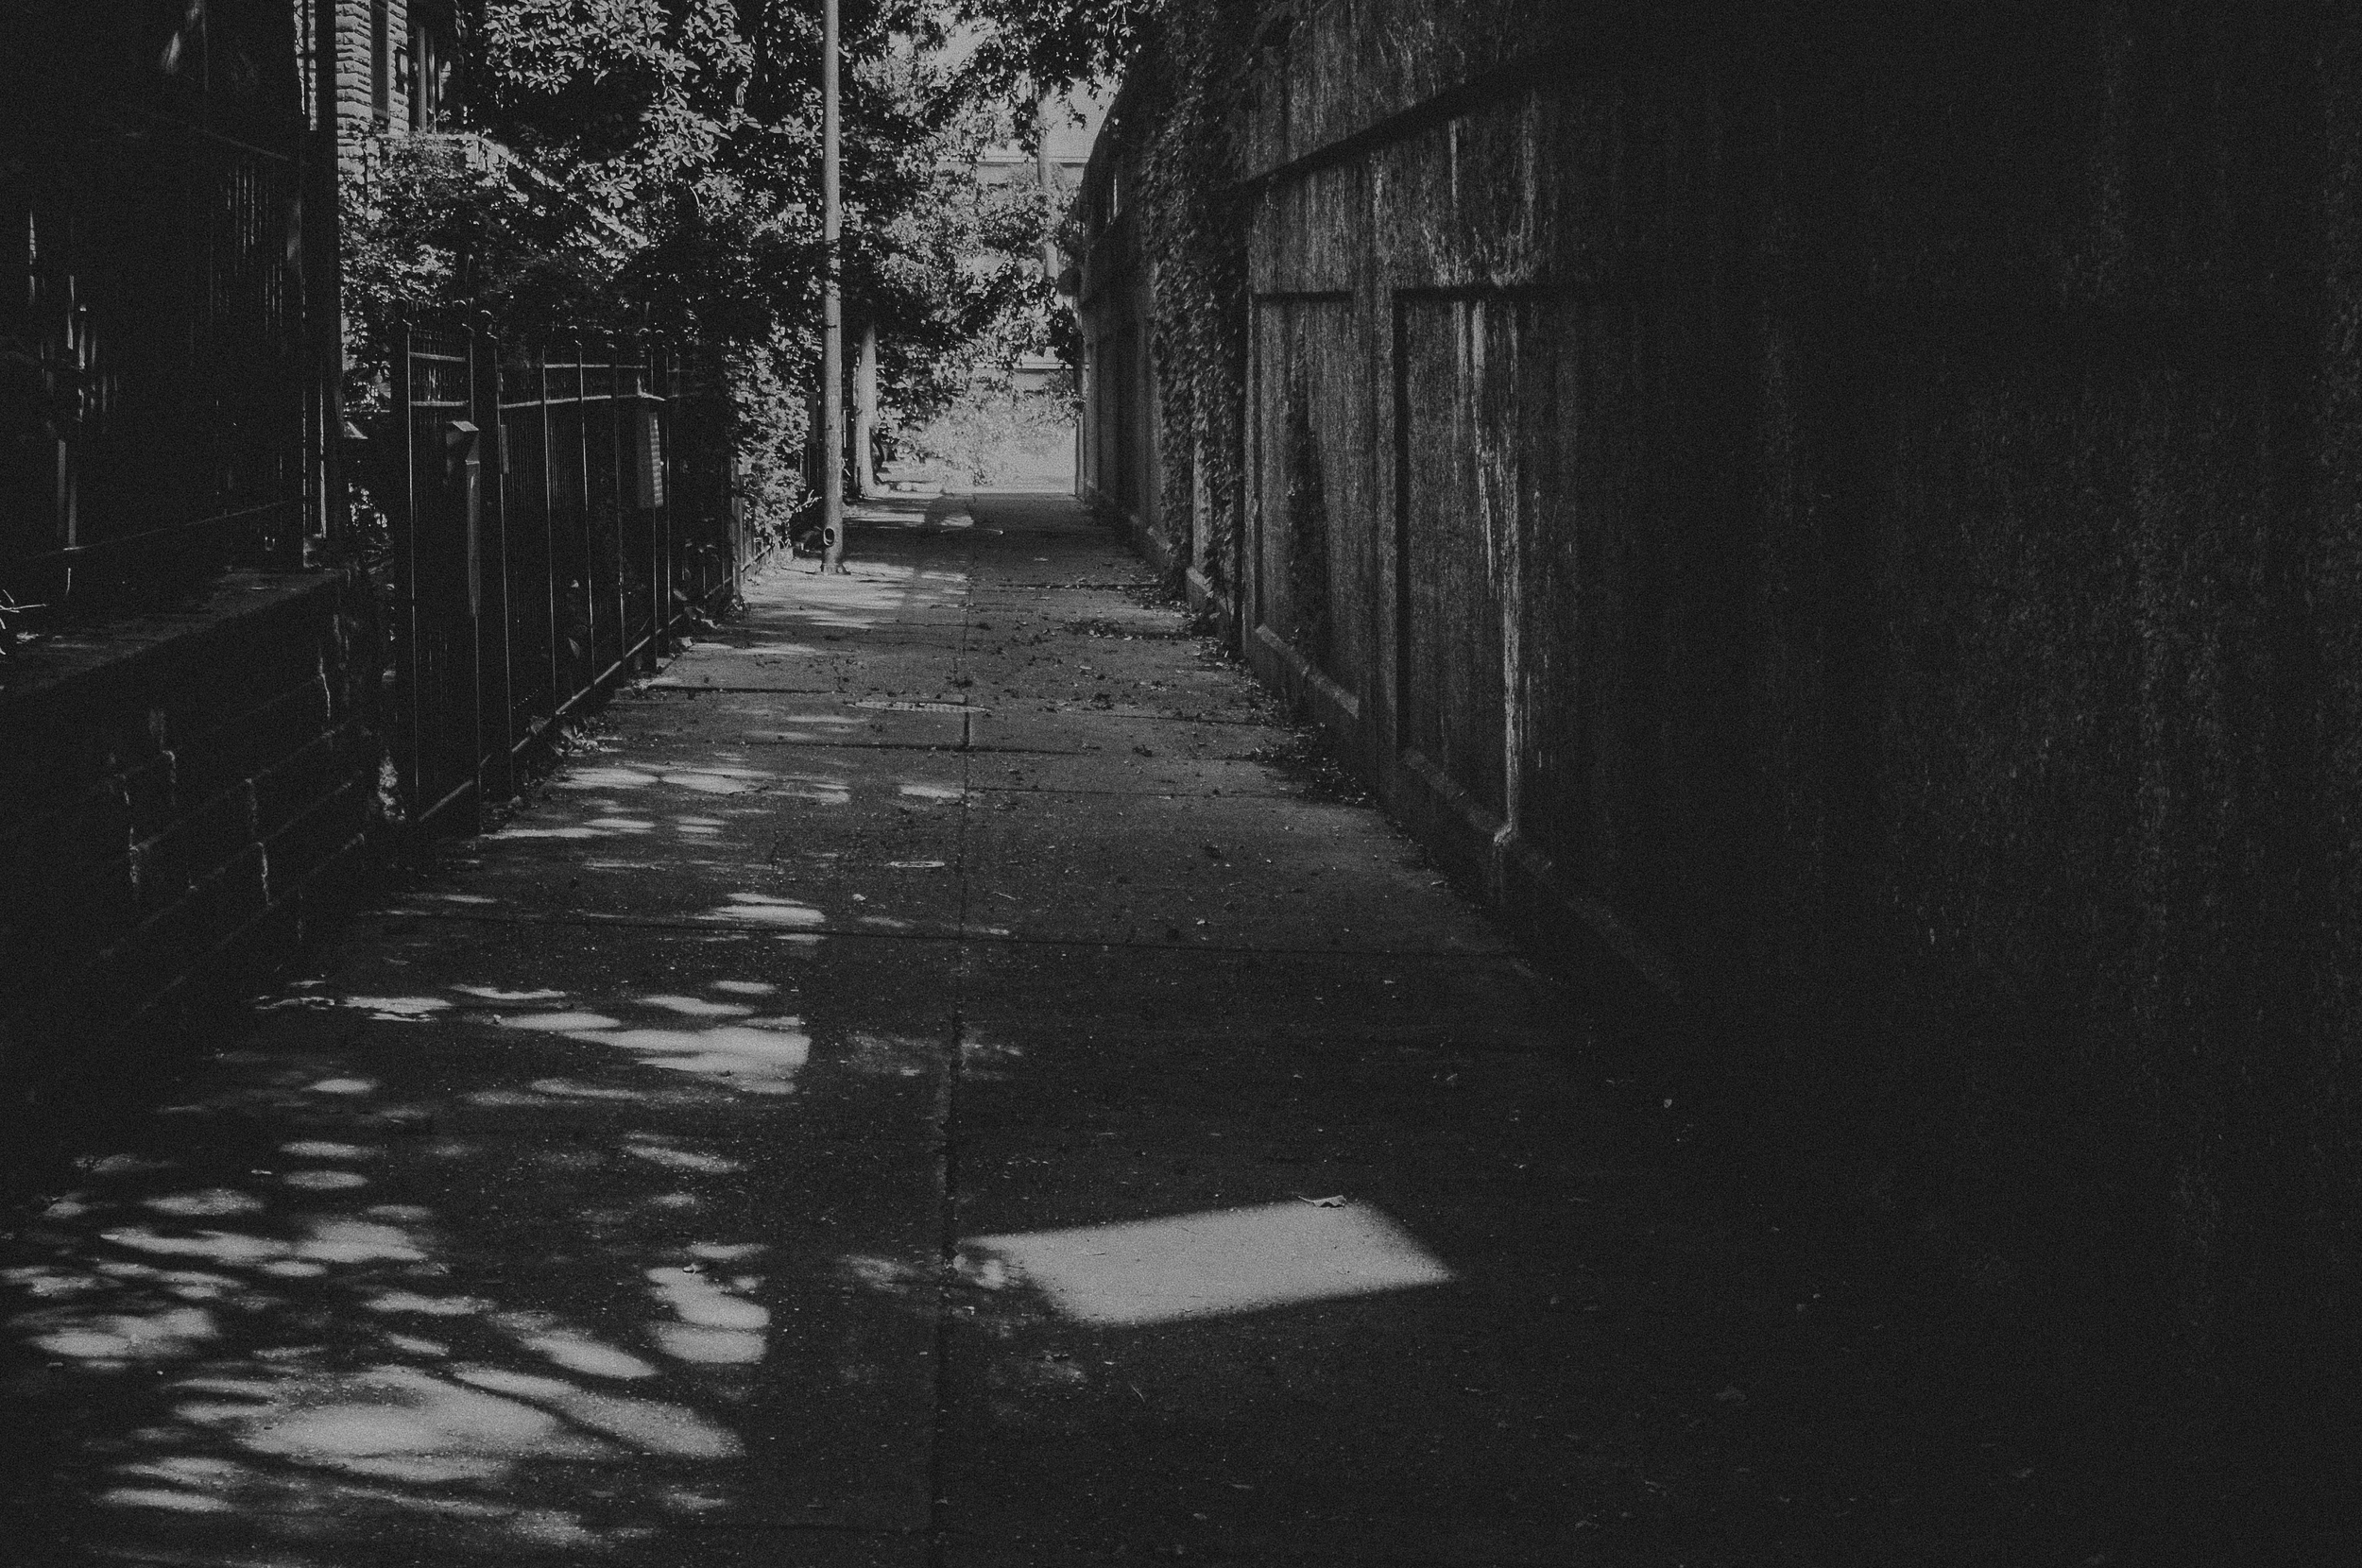 summertime alley way black and white chicago, IL